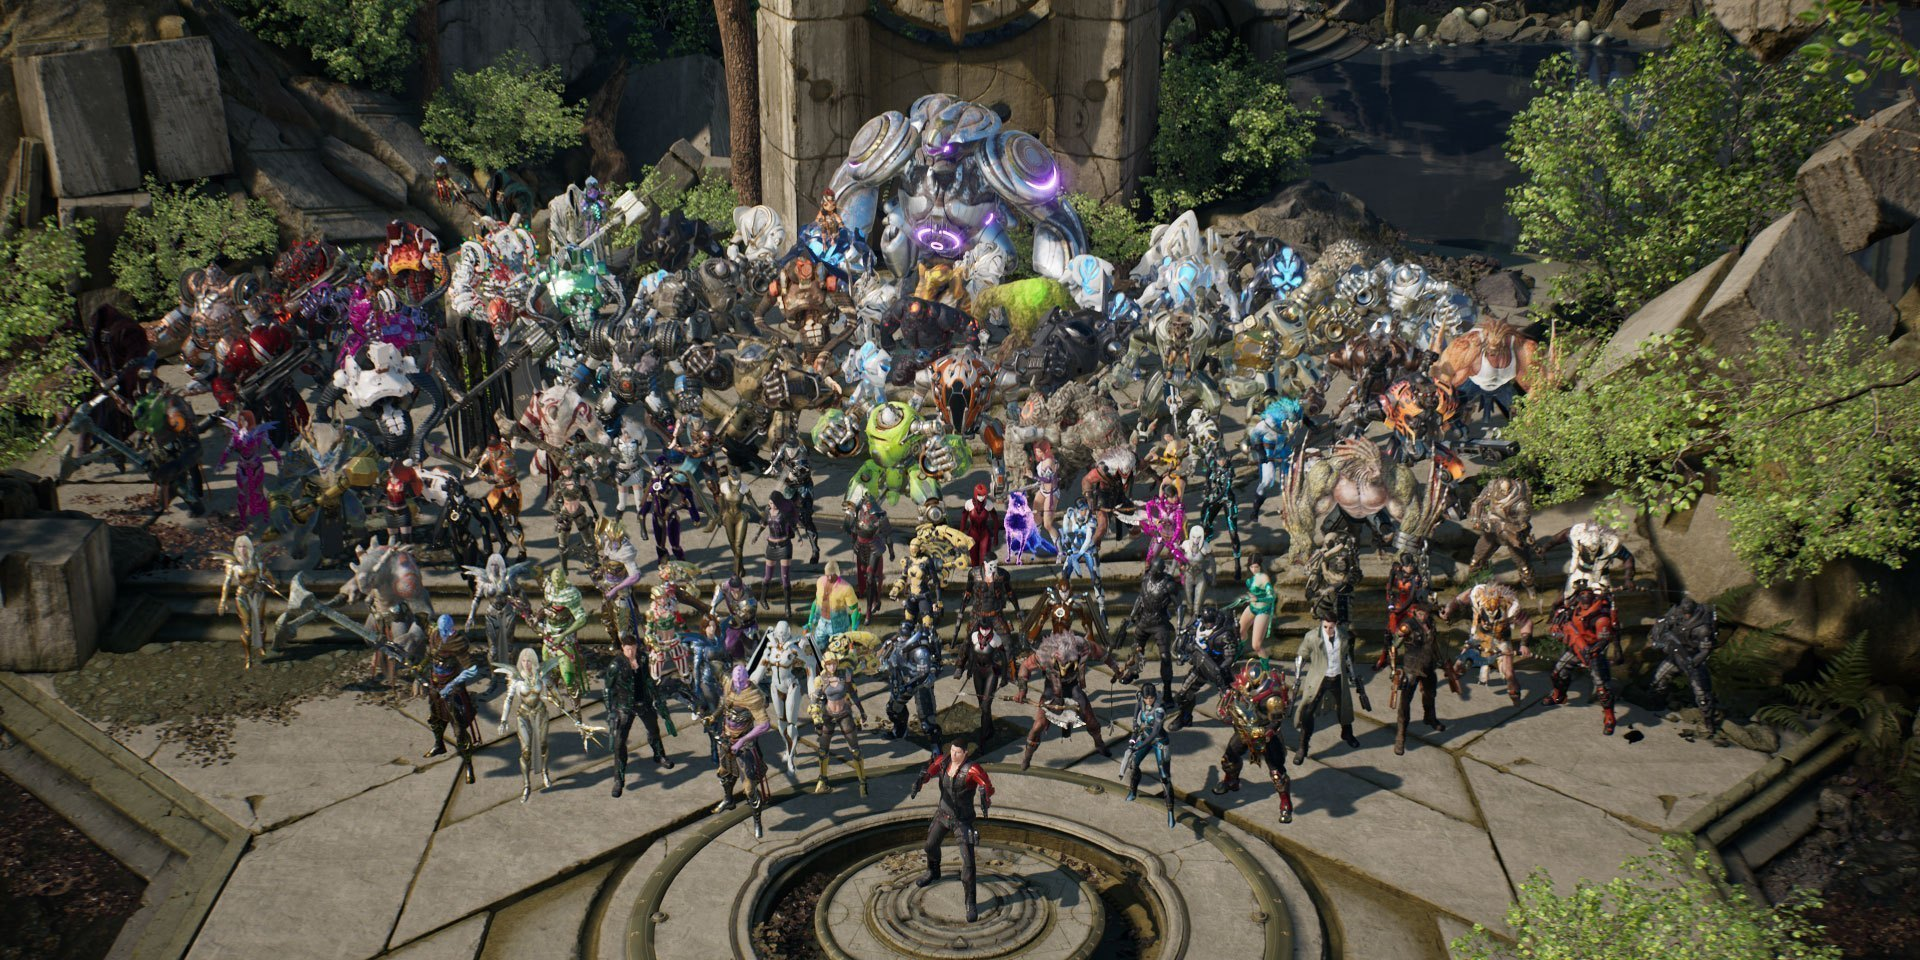 Epic Games To Give Away Paragon Assets That Are Worth 12 Million